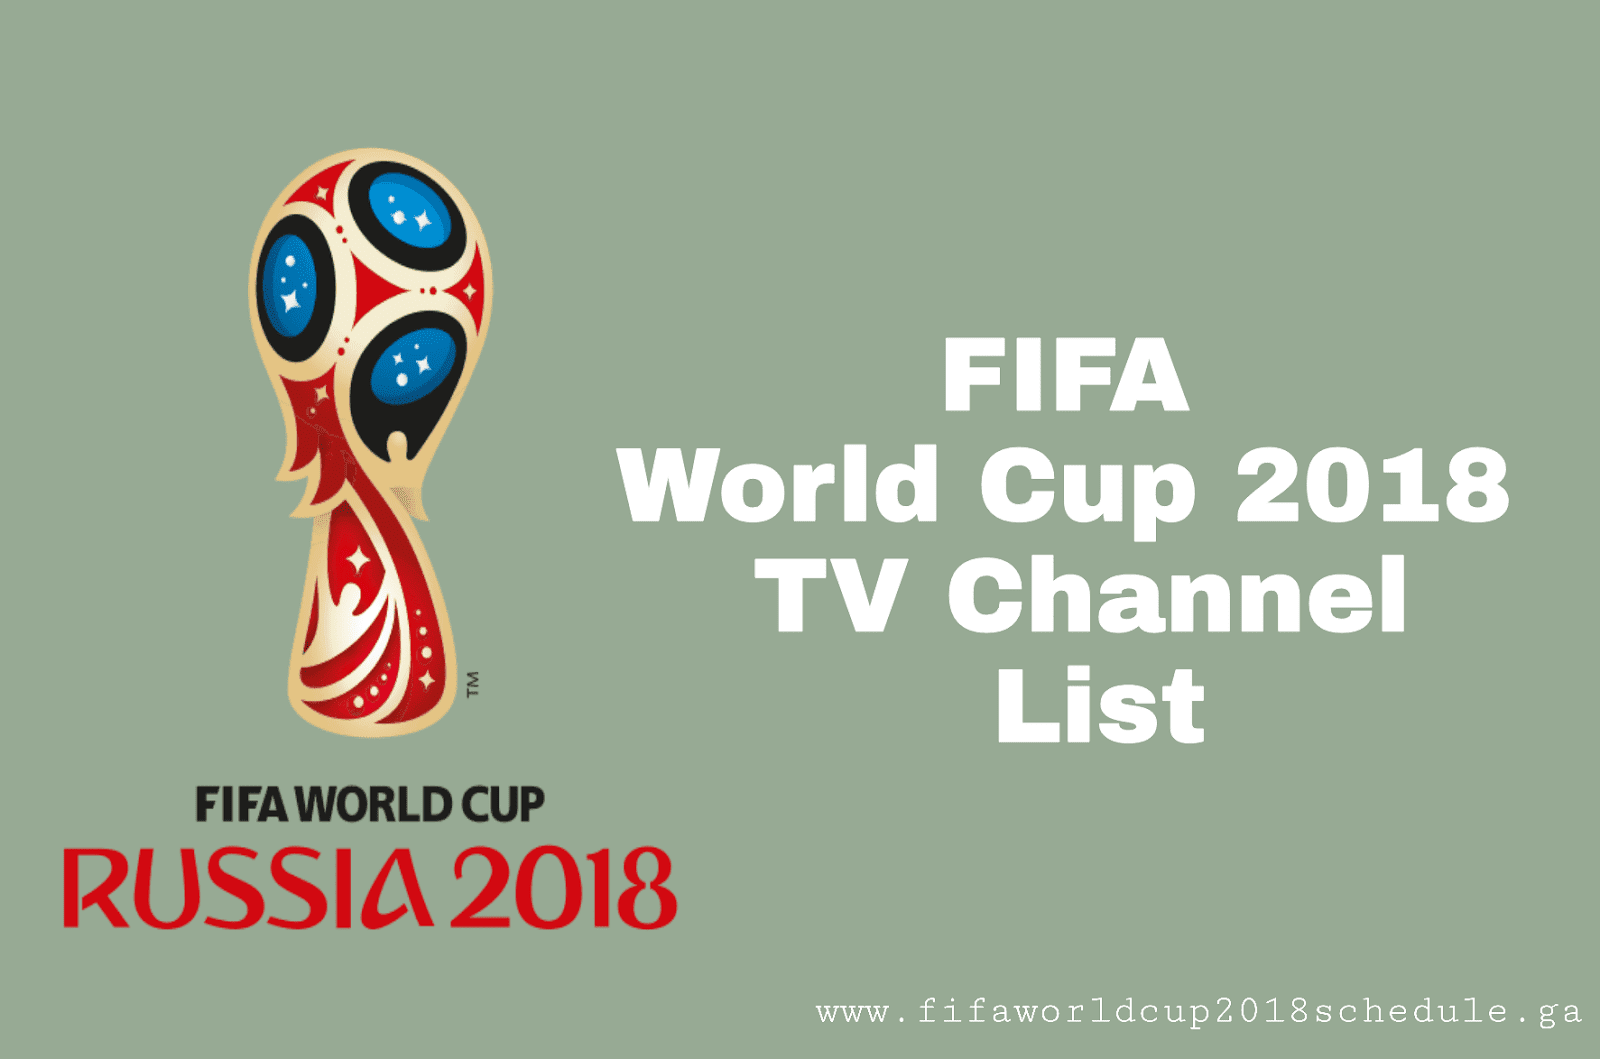 ICC World Cup 2019 TV Channels { Broadcasting Right } - ICC Cricket